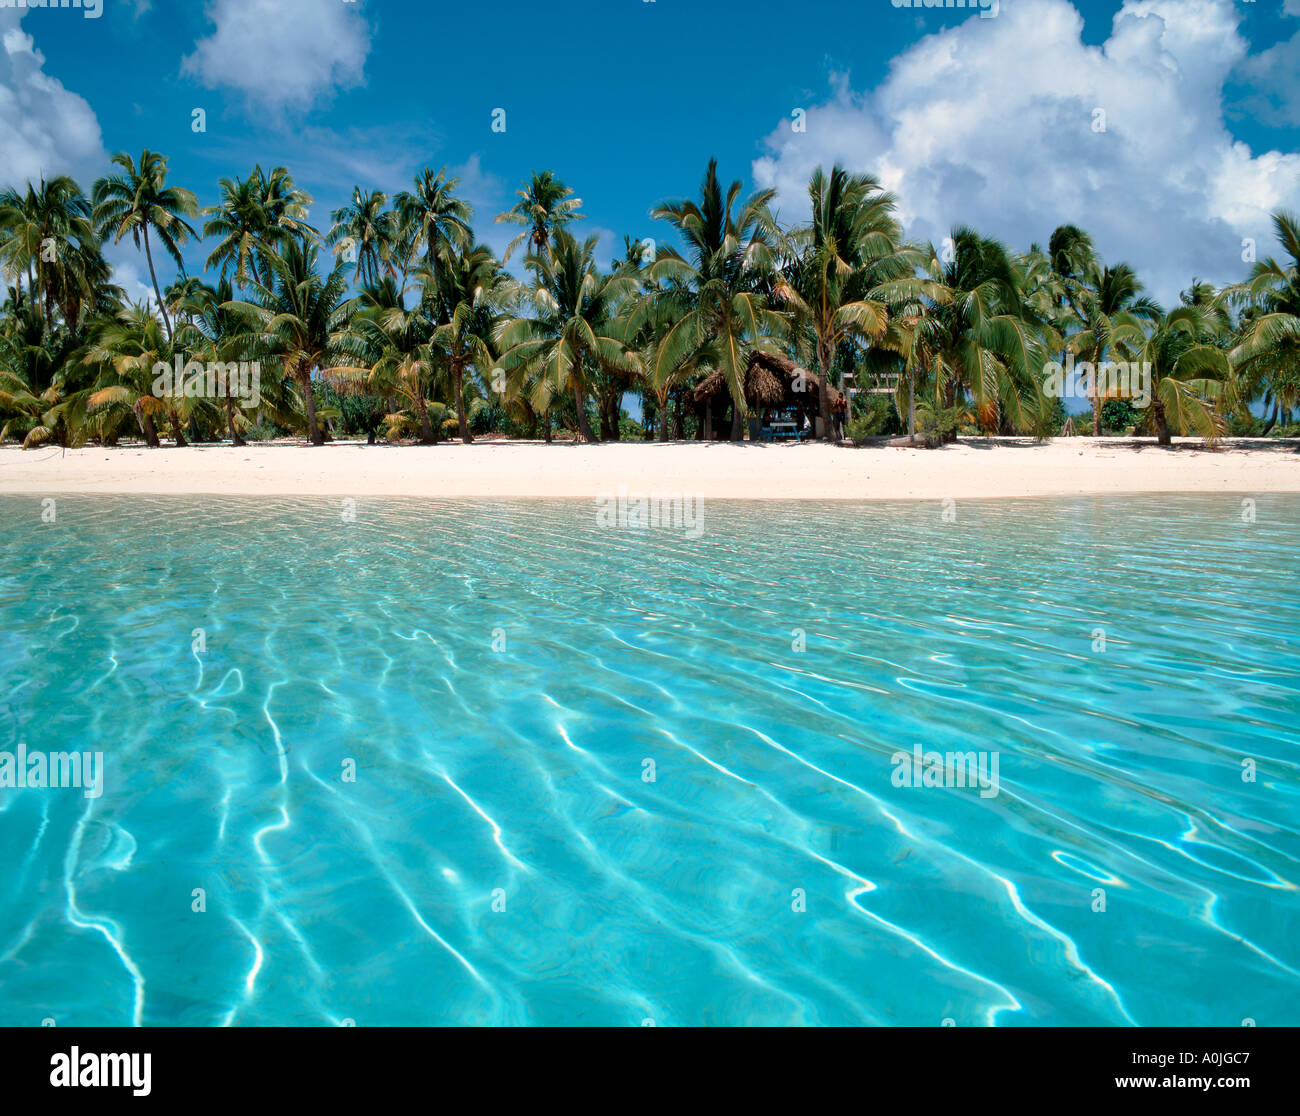 Cook Islands Beaches: South Pacific Cook Islands Aitutaki Lagoon One Foot Island